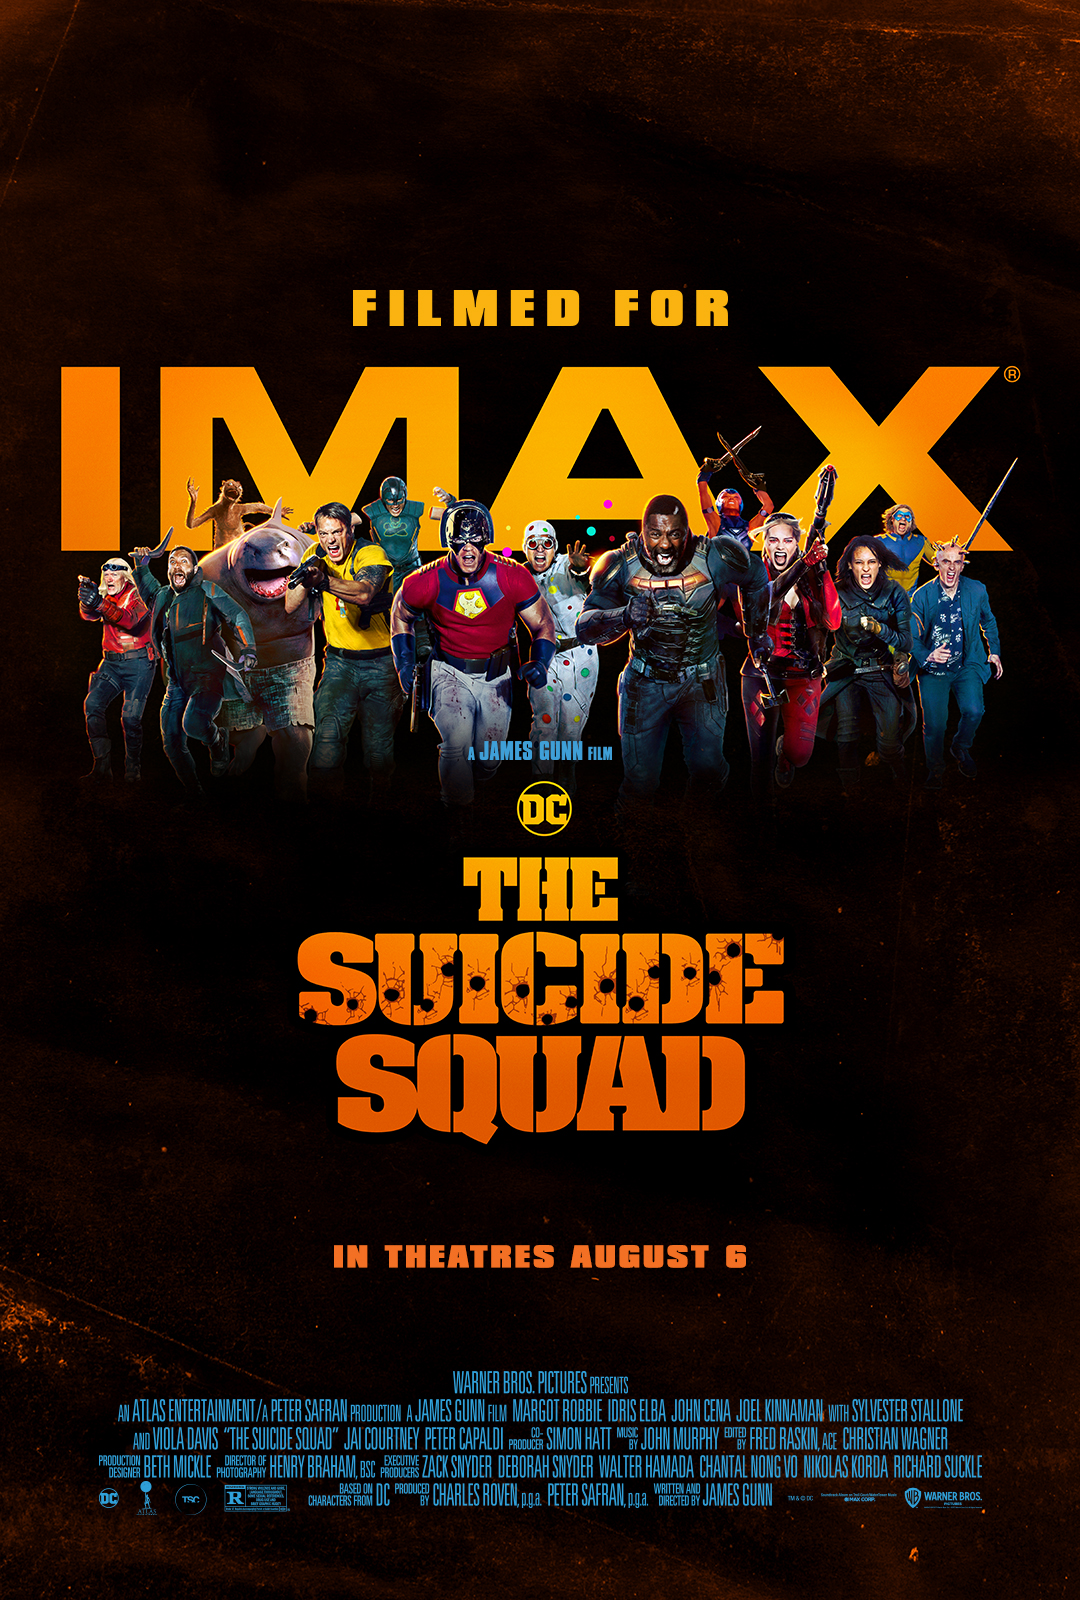 Movie poster image for THE SUICIDE SQUAD in IMAX